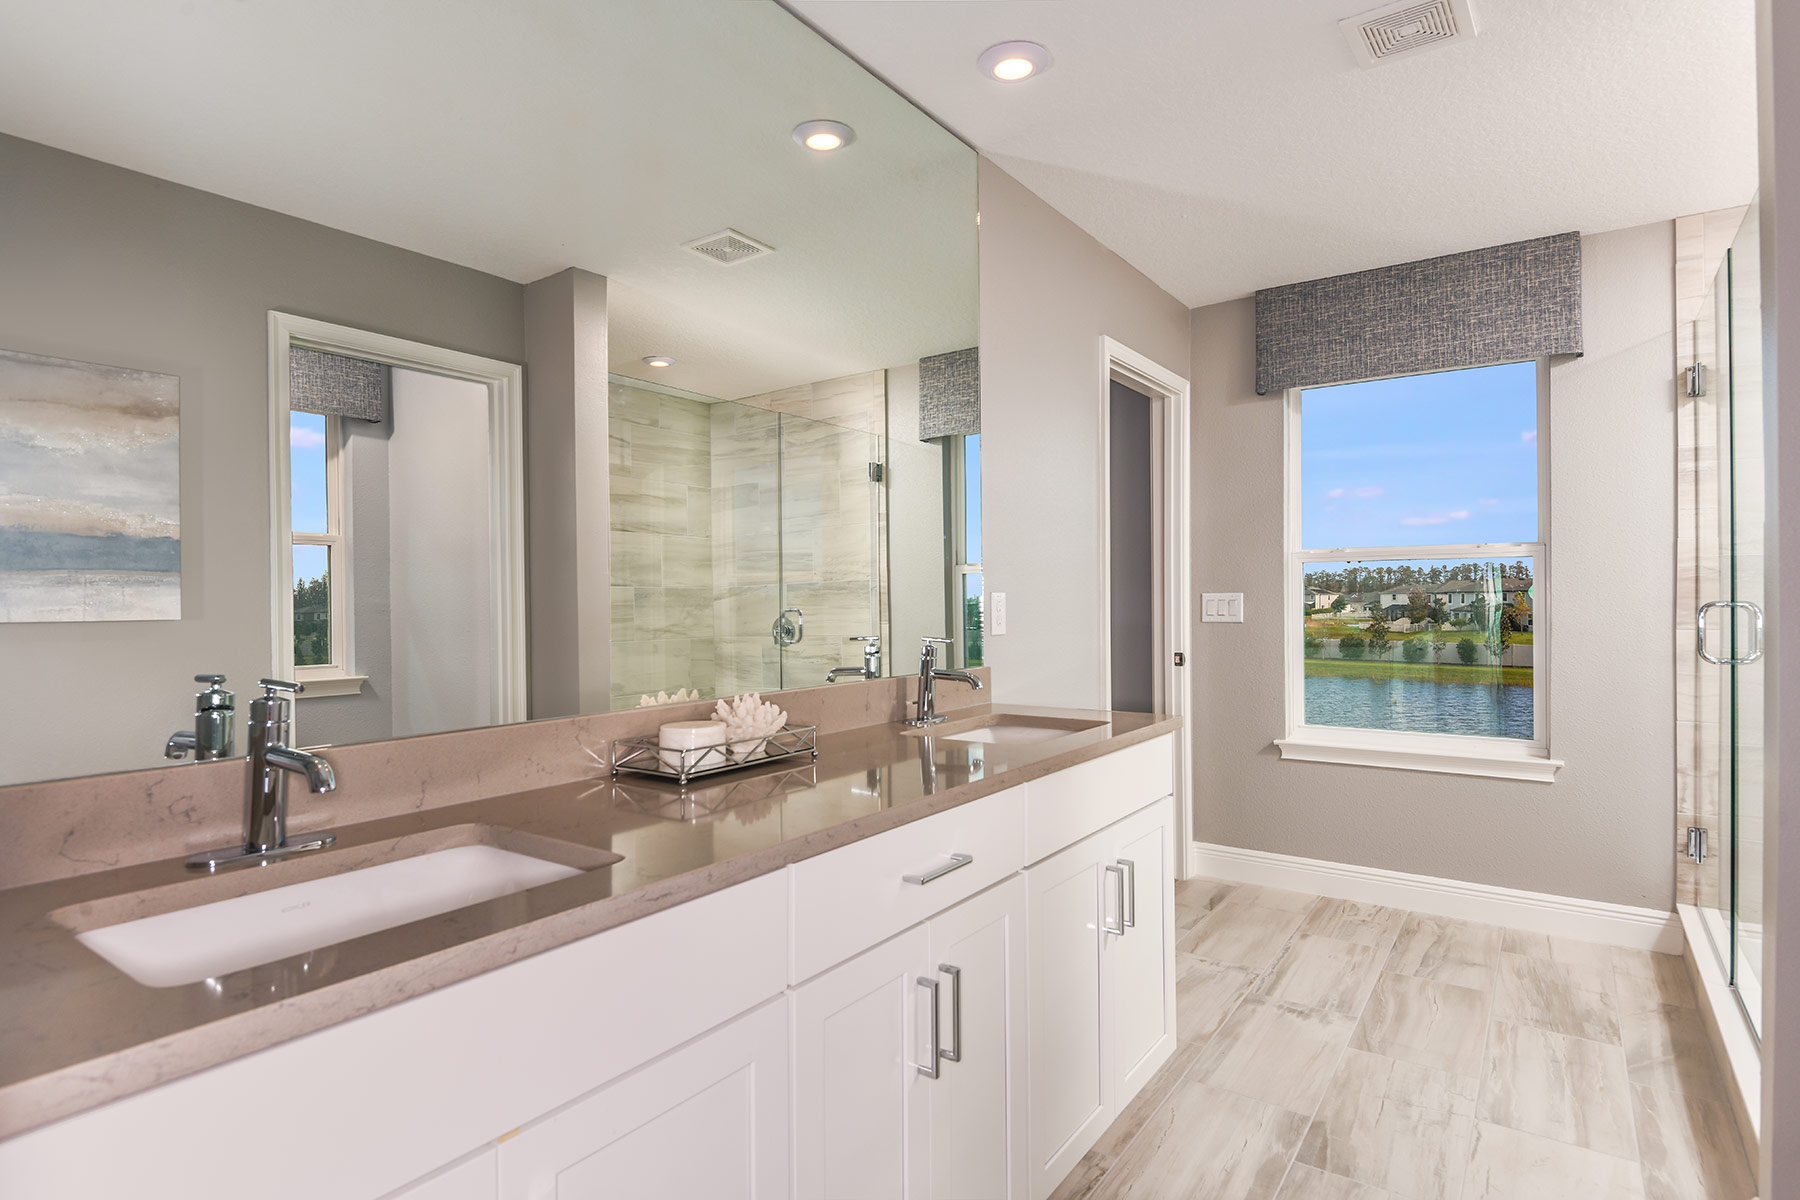 Venice Plan Bathroom_Master Bath at Parkview at Long Lake Ranch in Lutz Florida by Mattamy Homes